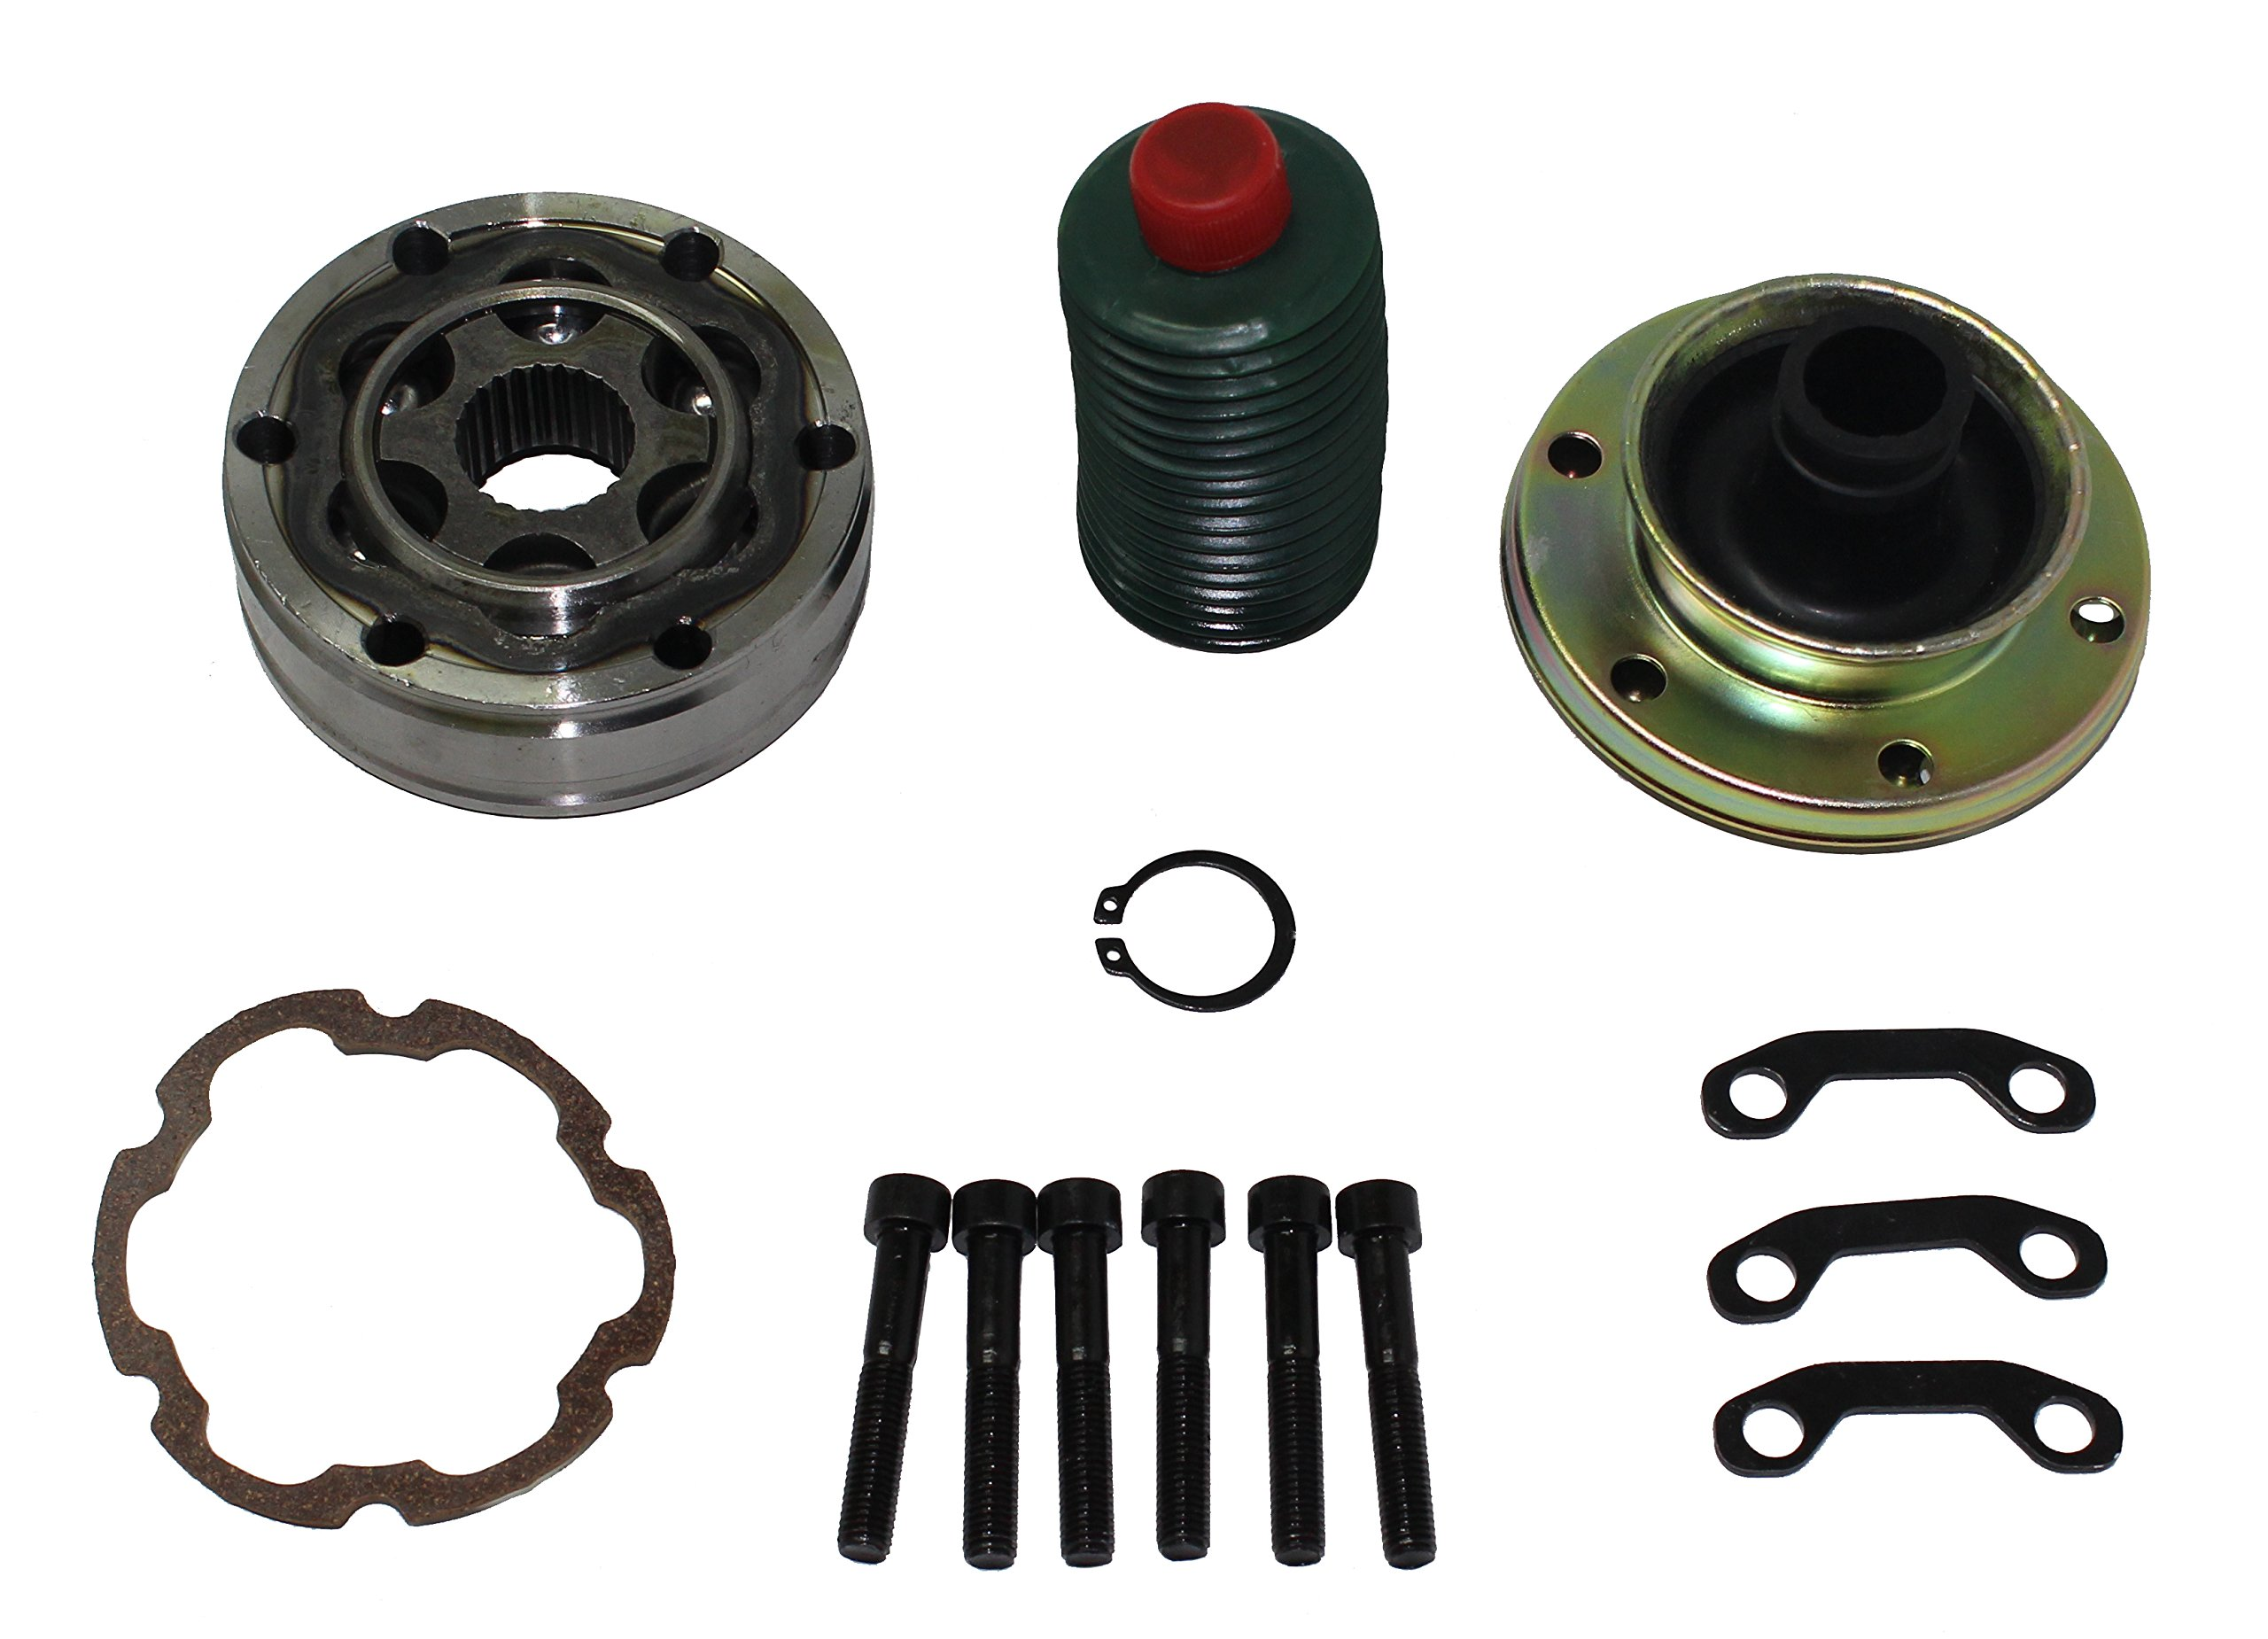 Detroit Axle: Rear Position Brand New Drive Shaft CV Joint Repair Kit for Jeep Truck'sShort Box - CVK0011